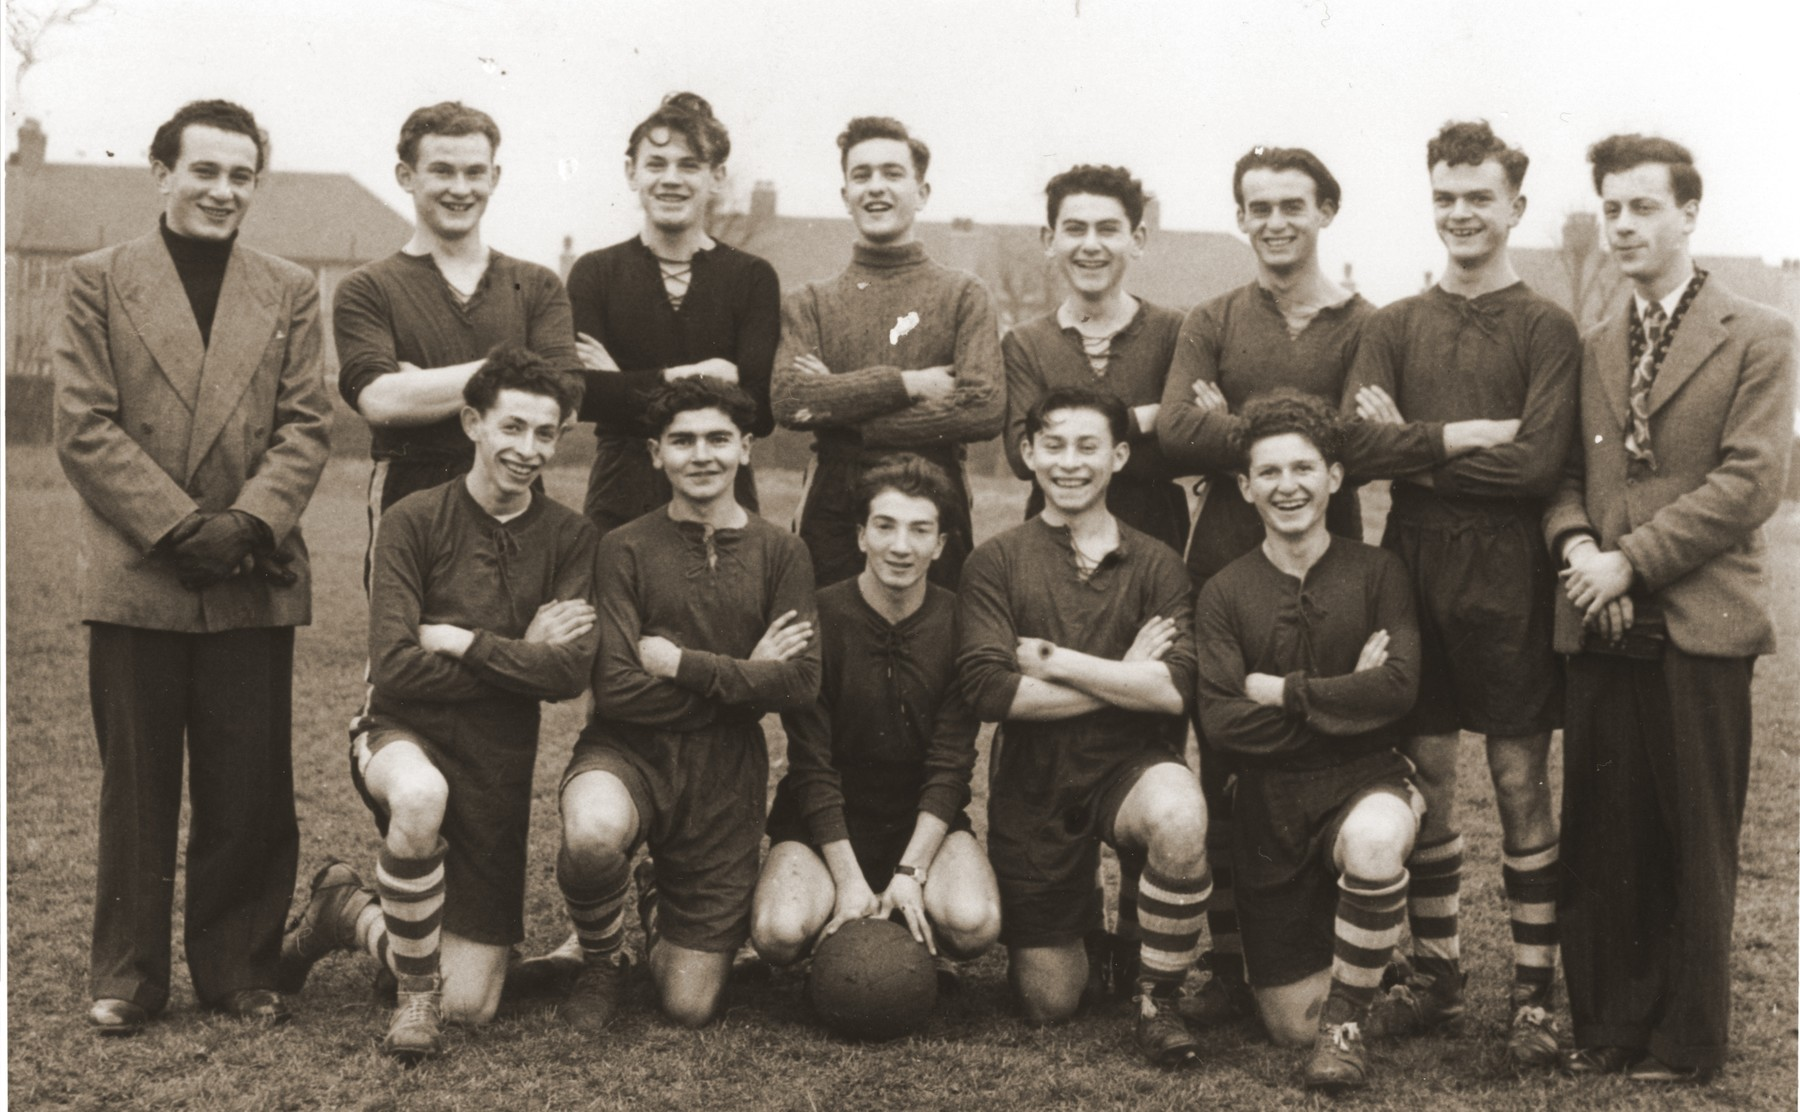 Group portrait of members of the Primrose Jewish Youth club soccer team on a sports field in London.  Pictured from left to right are: (first row) Willie Rosenberg, Abie Herman, Joseph Zelikovich, David Goldschild, Erwin Buncel (second row); Sam Weinberger,  Leopold Frischman, Samuel Oliner, Ullman, Alex Abrahamovitz, Sidney Farkas, and Ziggy ?.